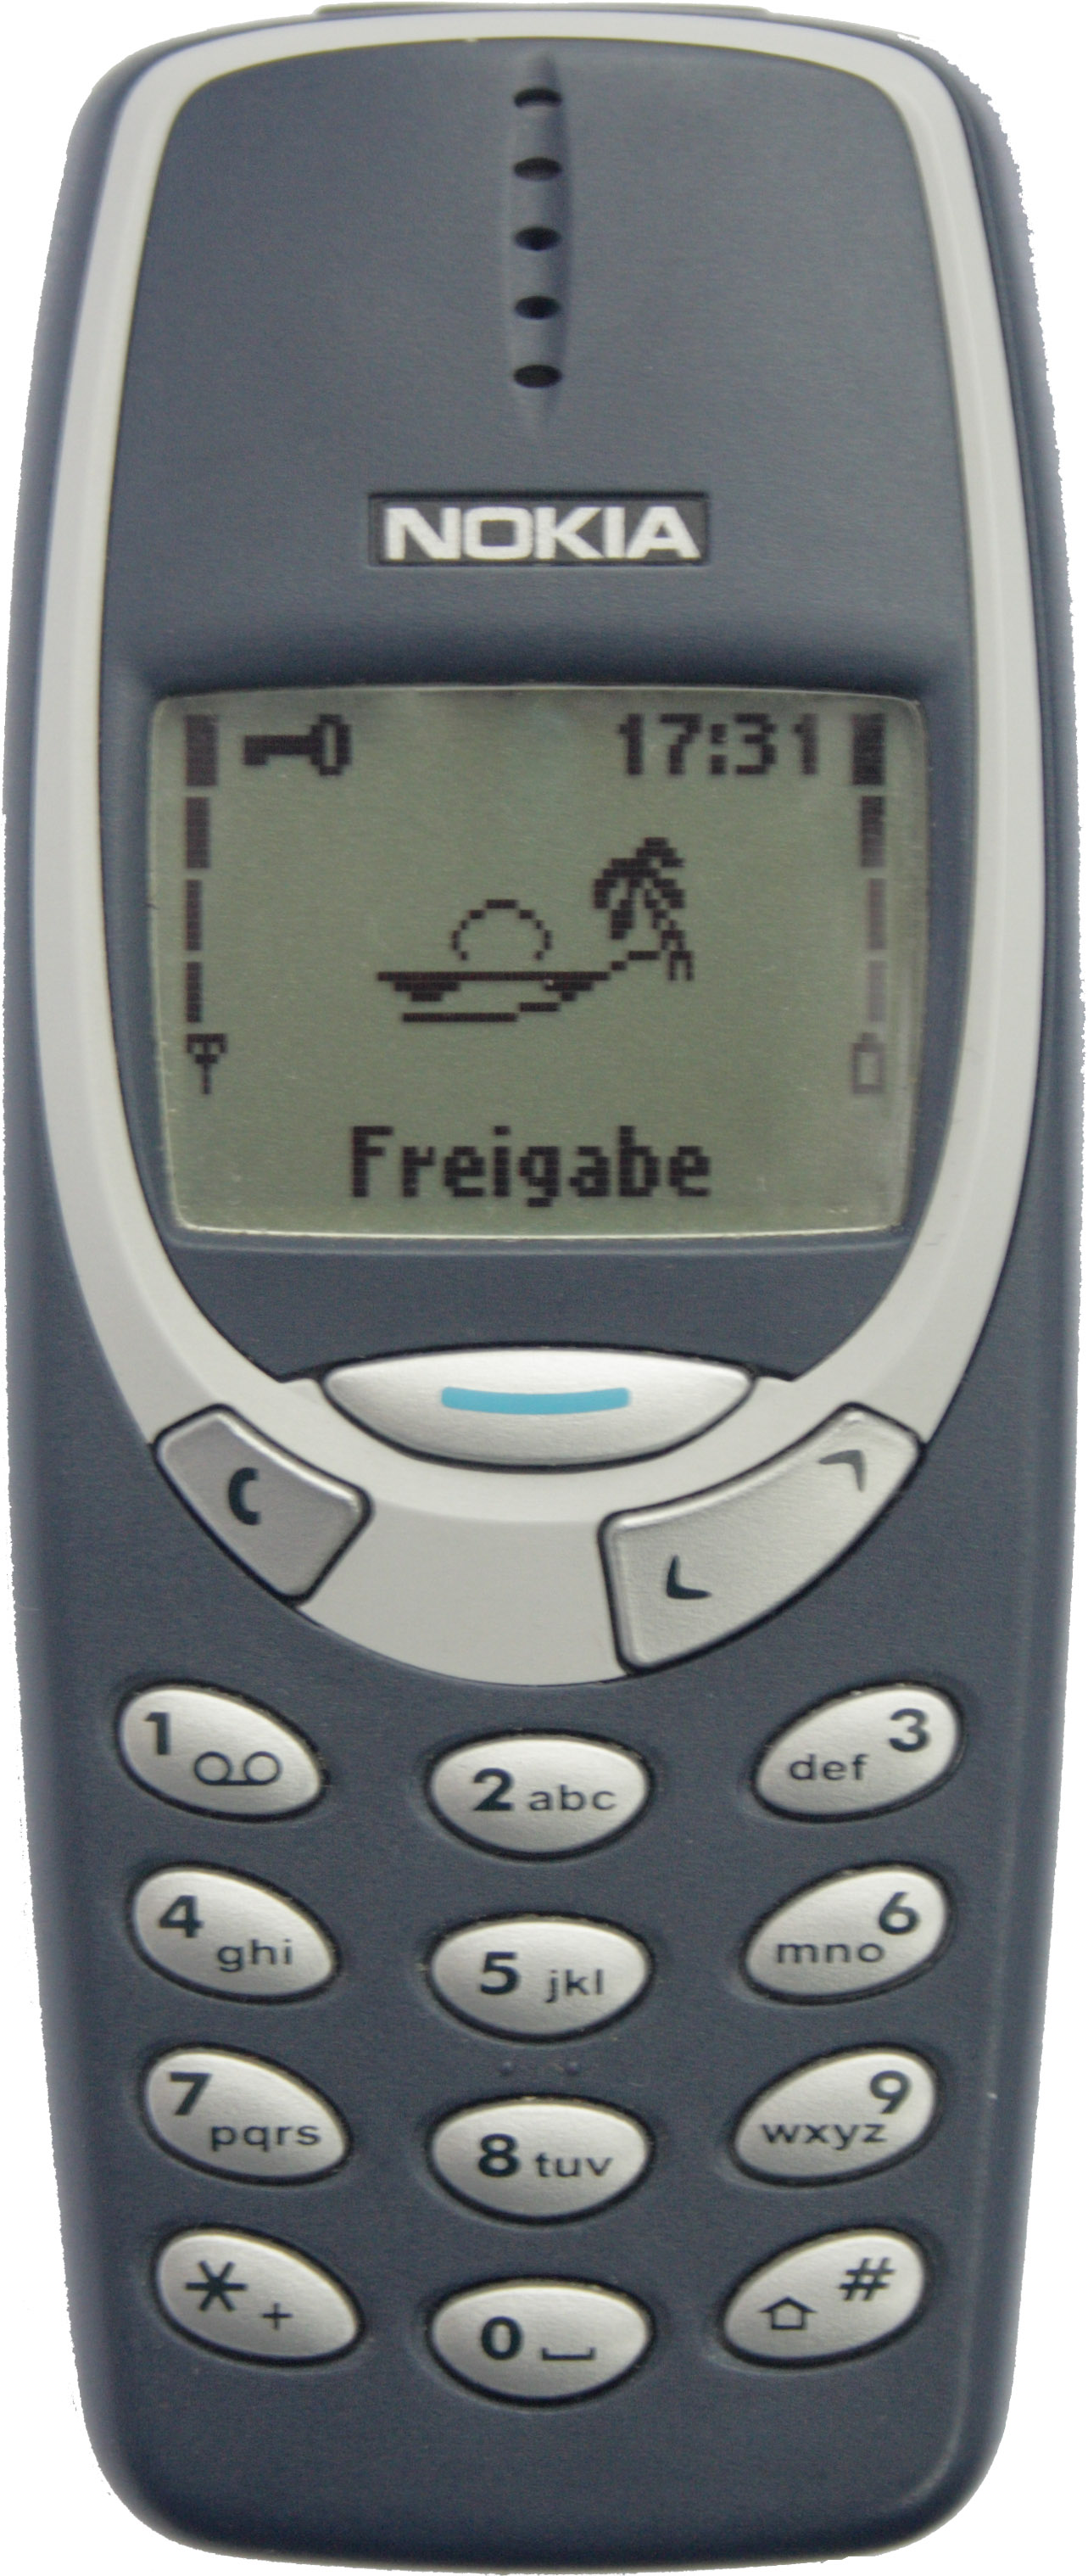 Nokia 3310   Wikipedia  the free encyclopedia